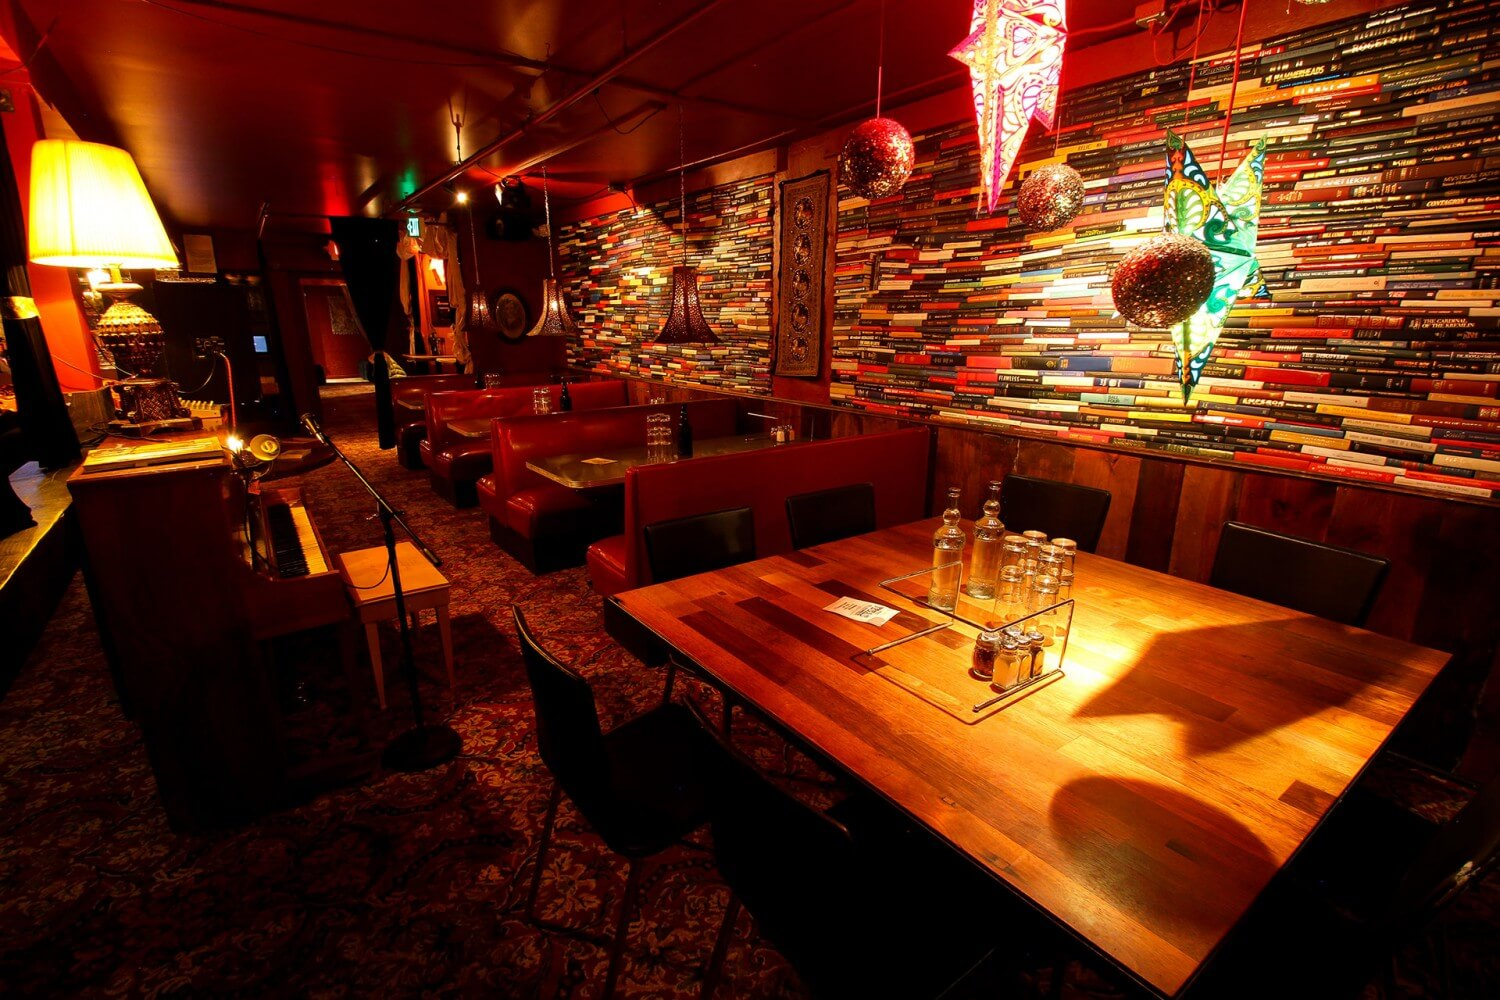 Secret Stash Pizza - Crested Butte, CO - The Red Room Night Club